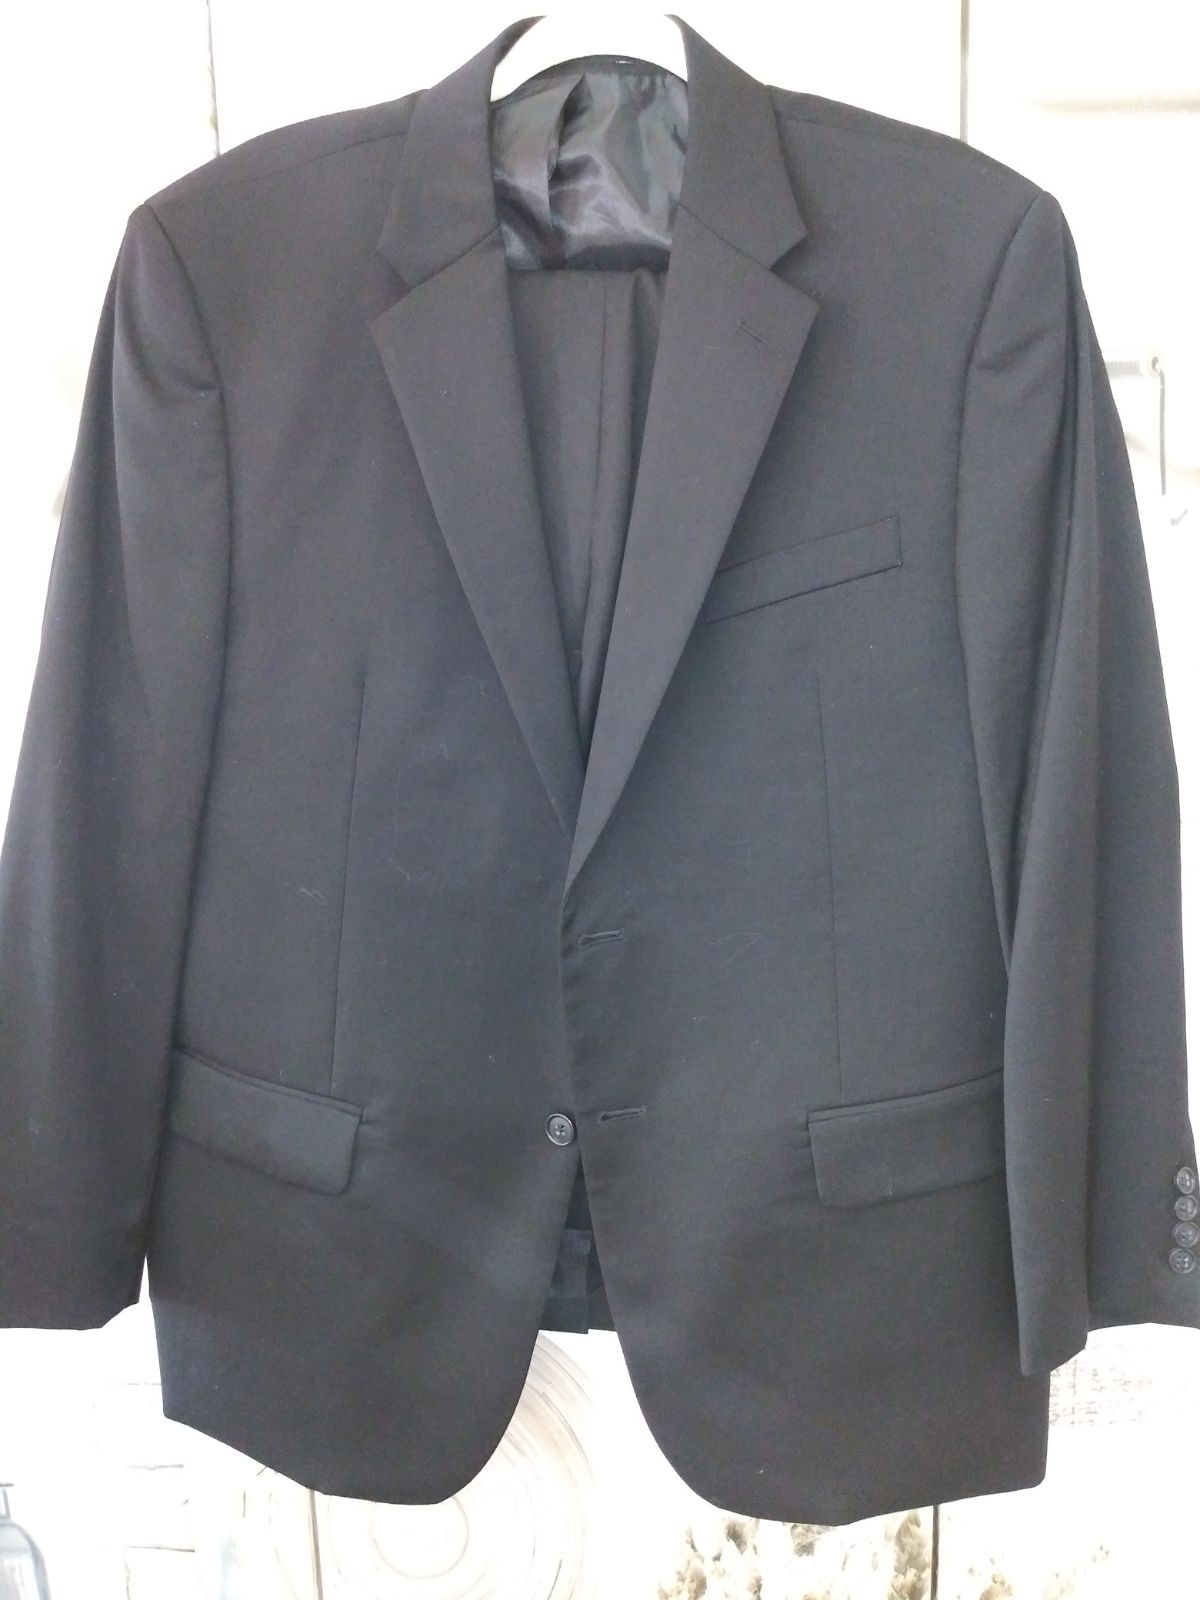 Joseph & Feiss Suit Sz. 38S LNC